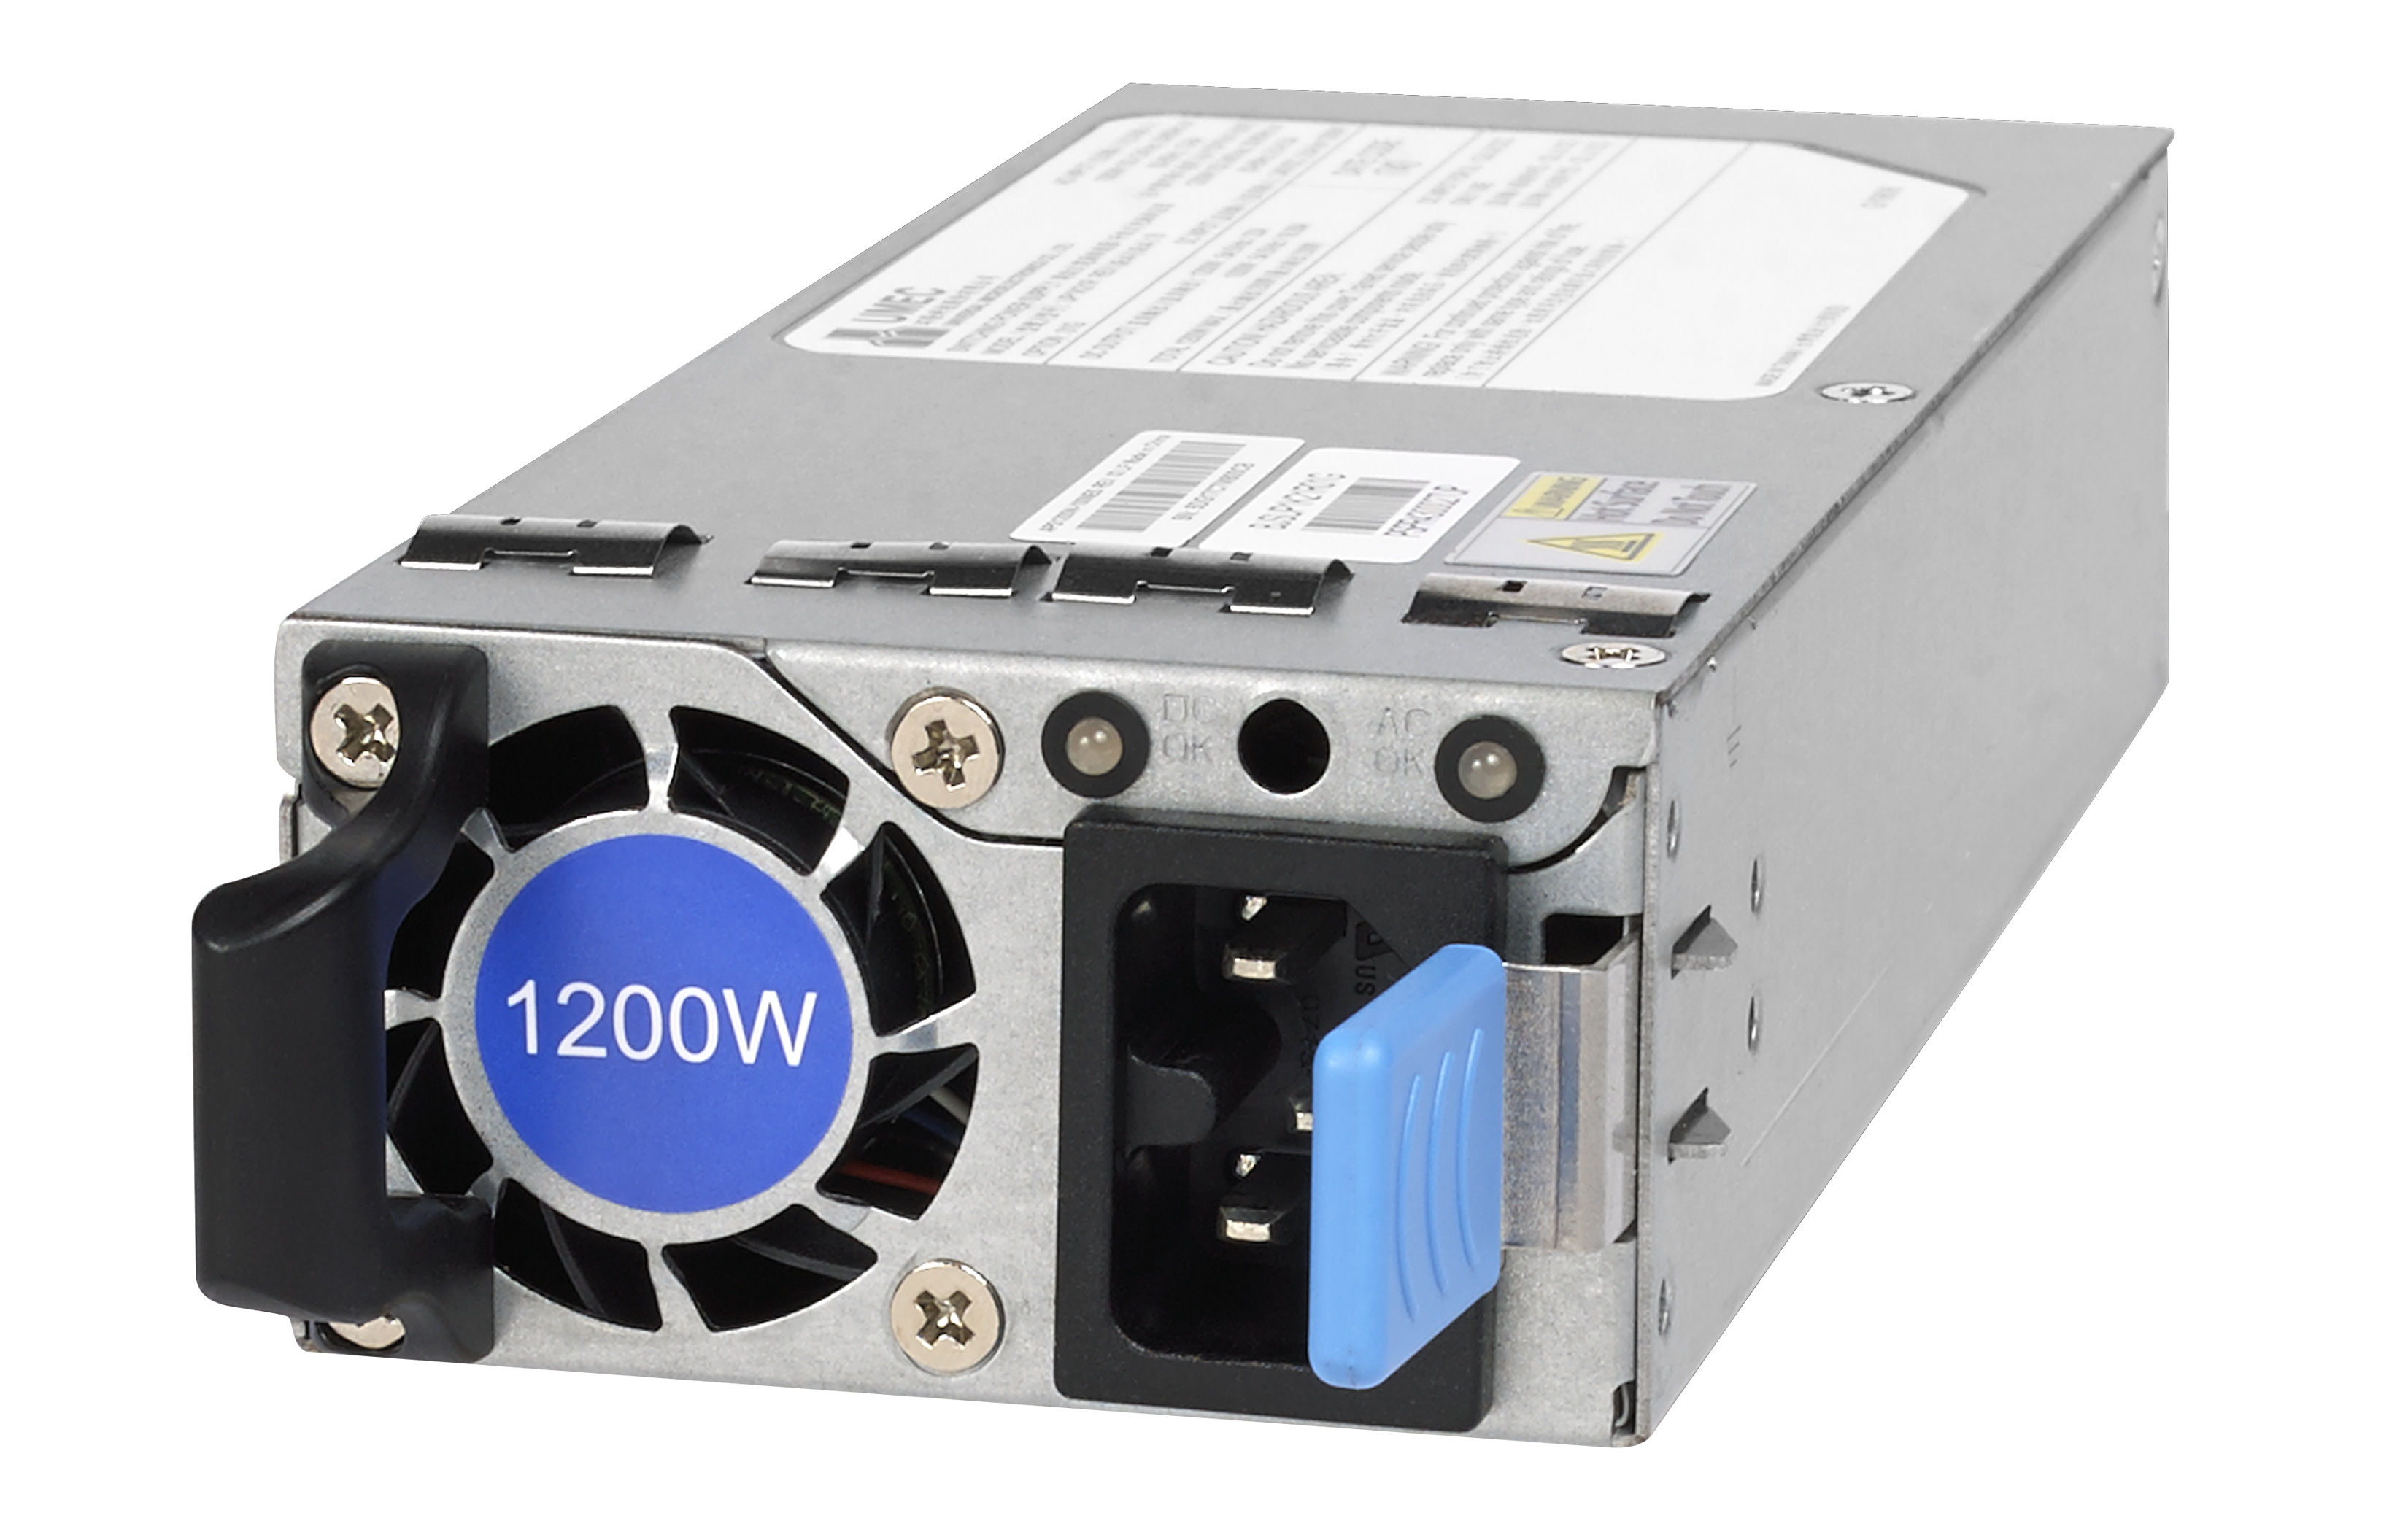 1200W Power Supply Unit